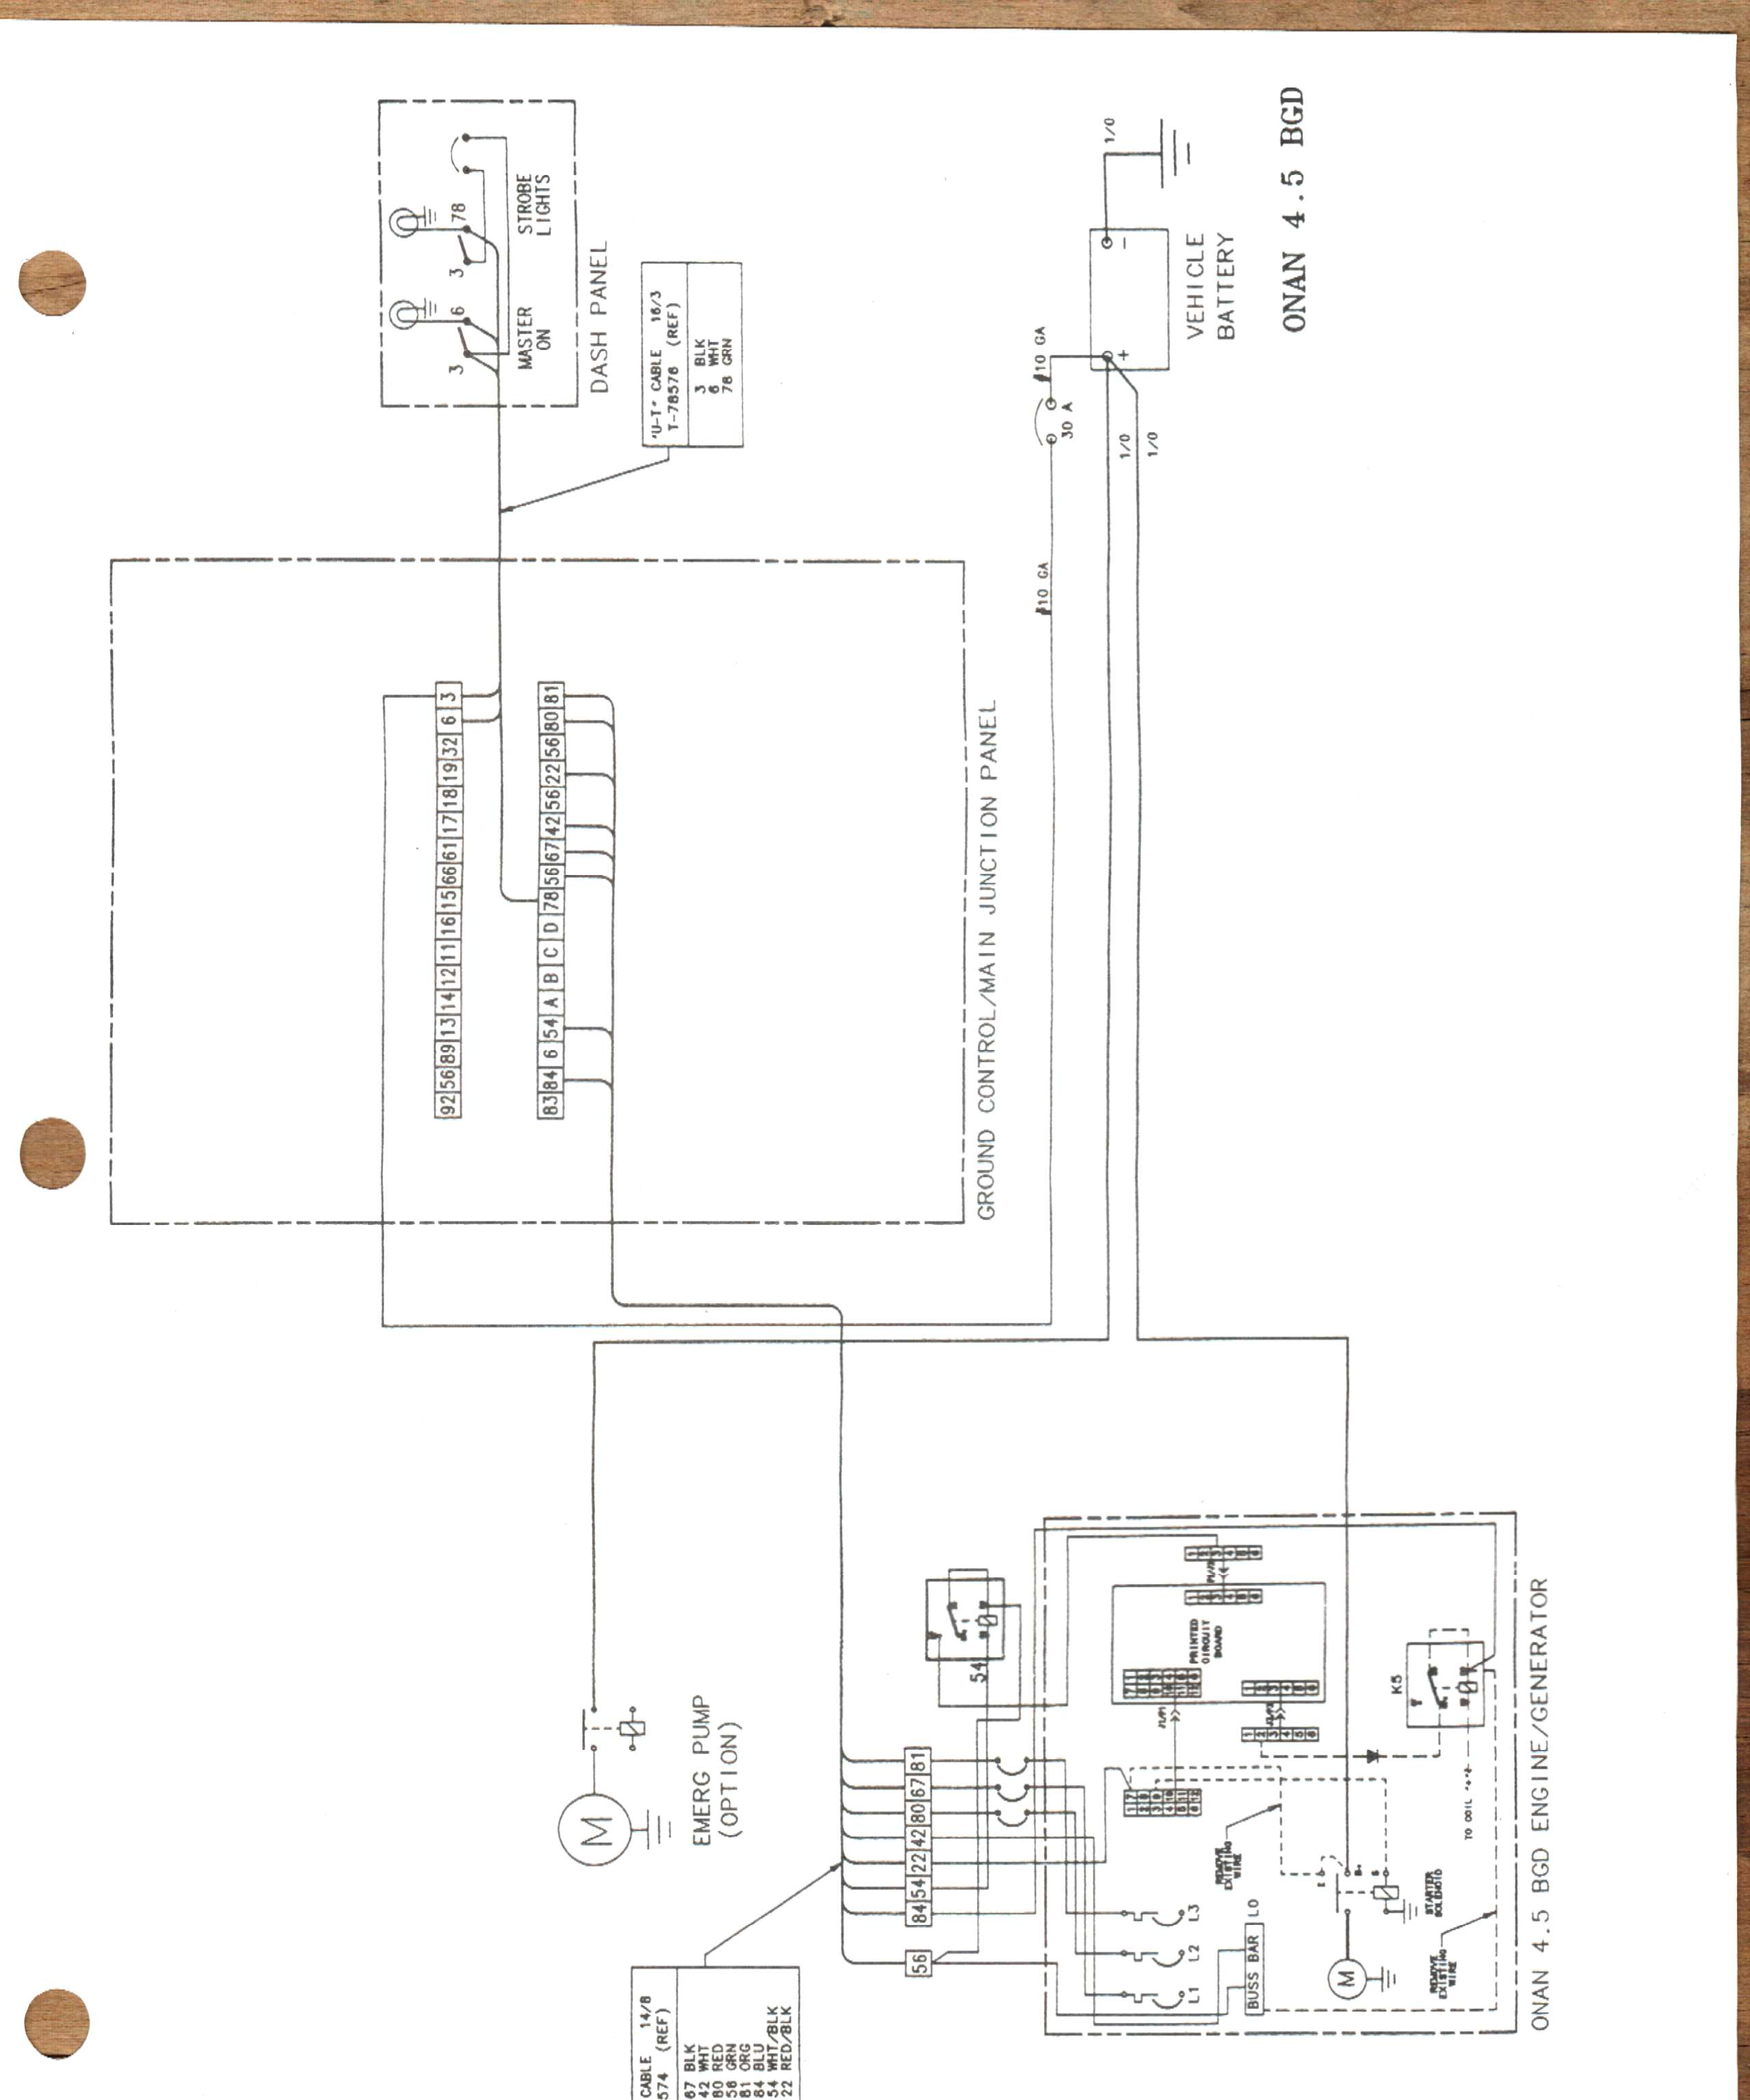 Telsta Boom Truck Wiring Diagram Reinvent Your Jcb Schematic I Need A For 28 Ft Bucket Rh Justanswer Com